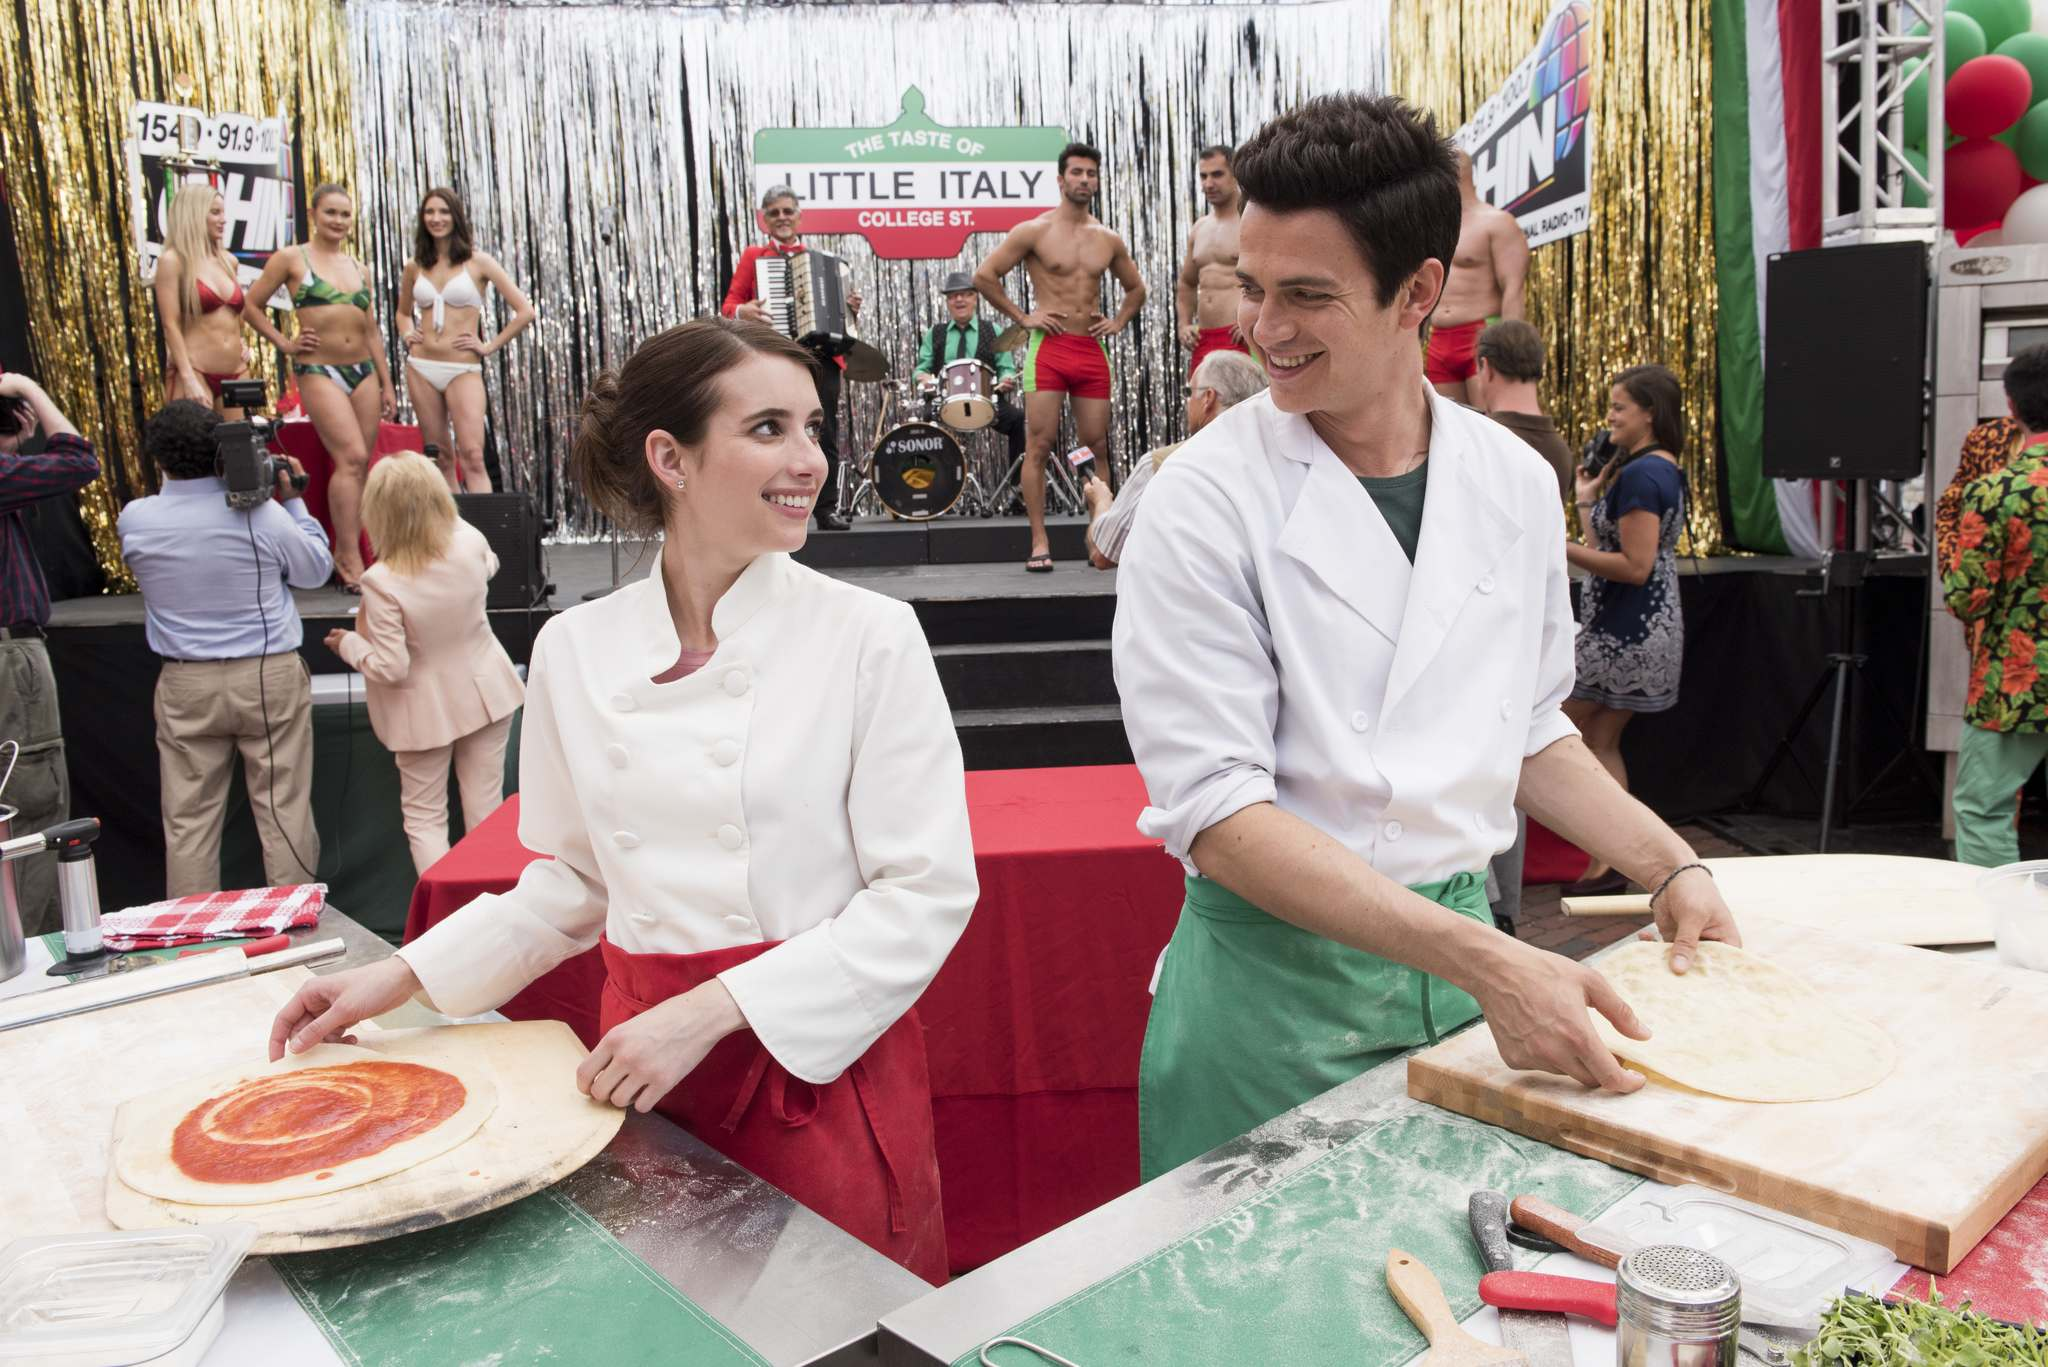 VOLTAGE PICTURES</p><p>Emma Roberts and Hayden Christiansen can't seem to connect in Little Italy, making the romance in the move harder to believe.</p>